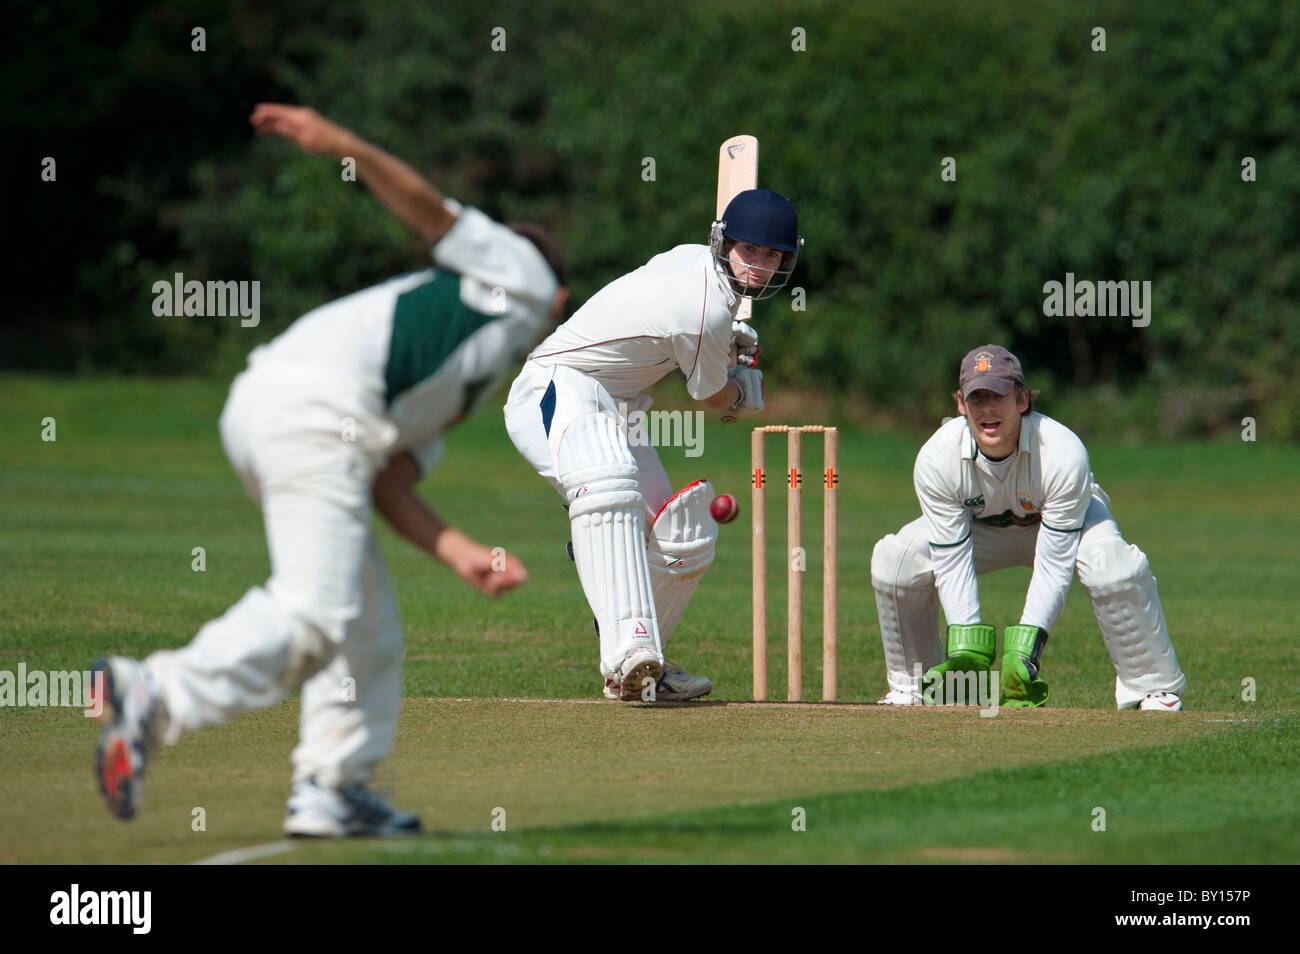 Saturday,28th August 2010. English cricket match, bowler and batsman in action. - Stock Image